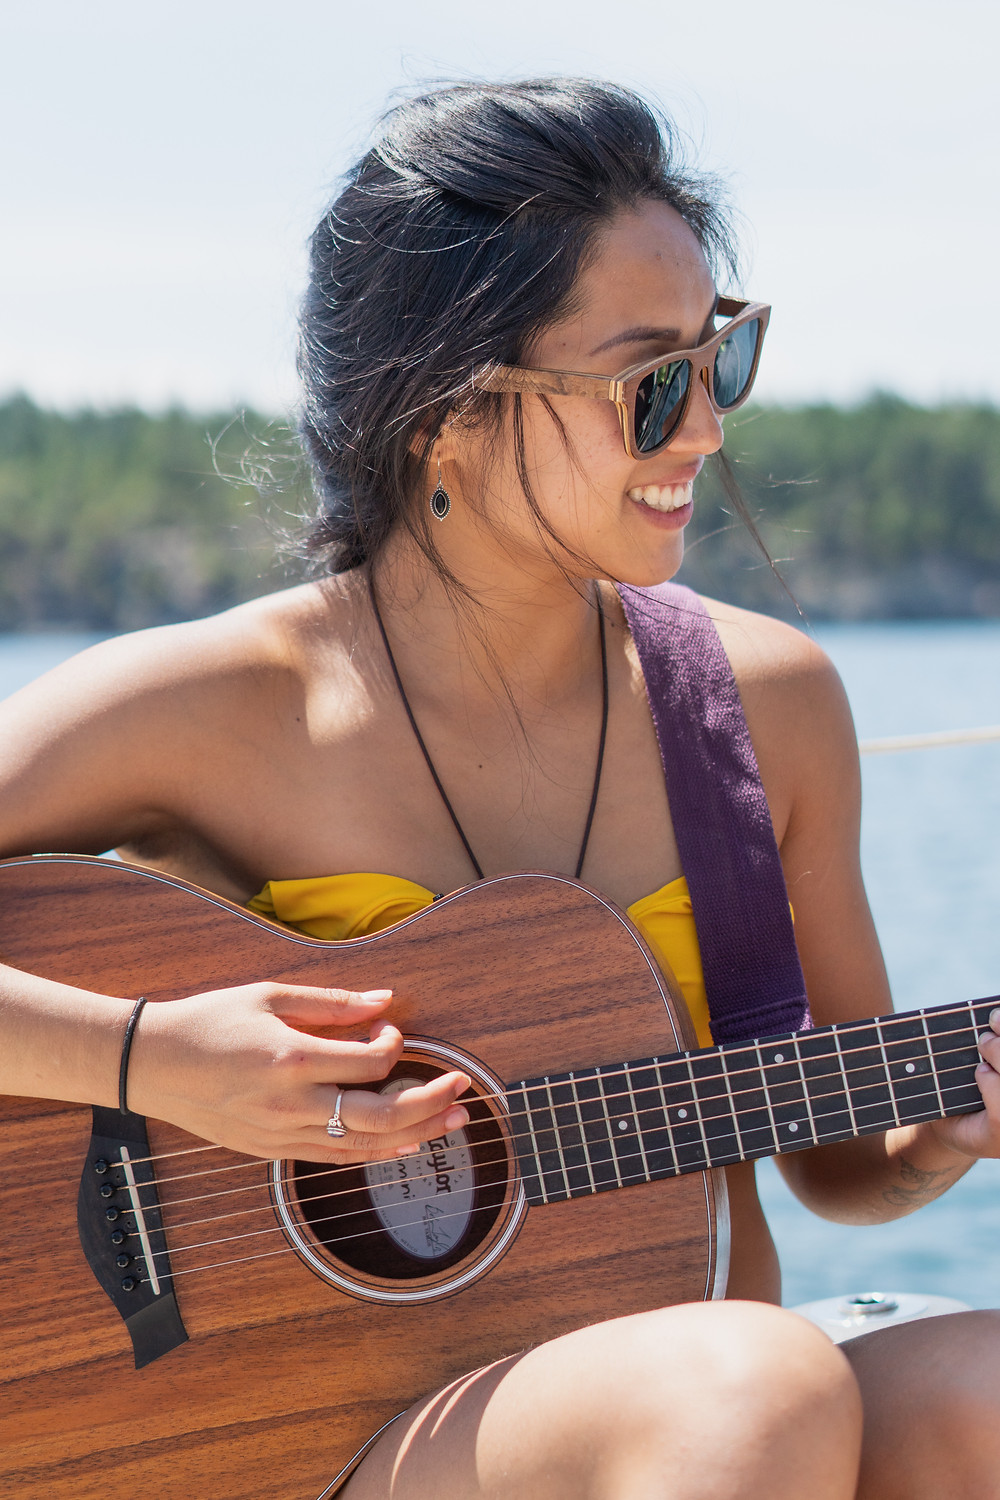 Photo shot by Gregory Wong, playing music on our sailing trip